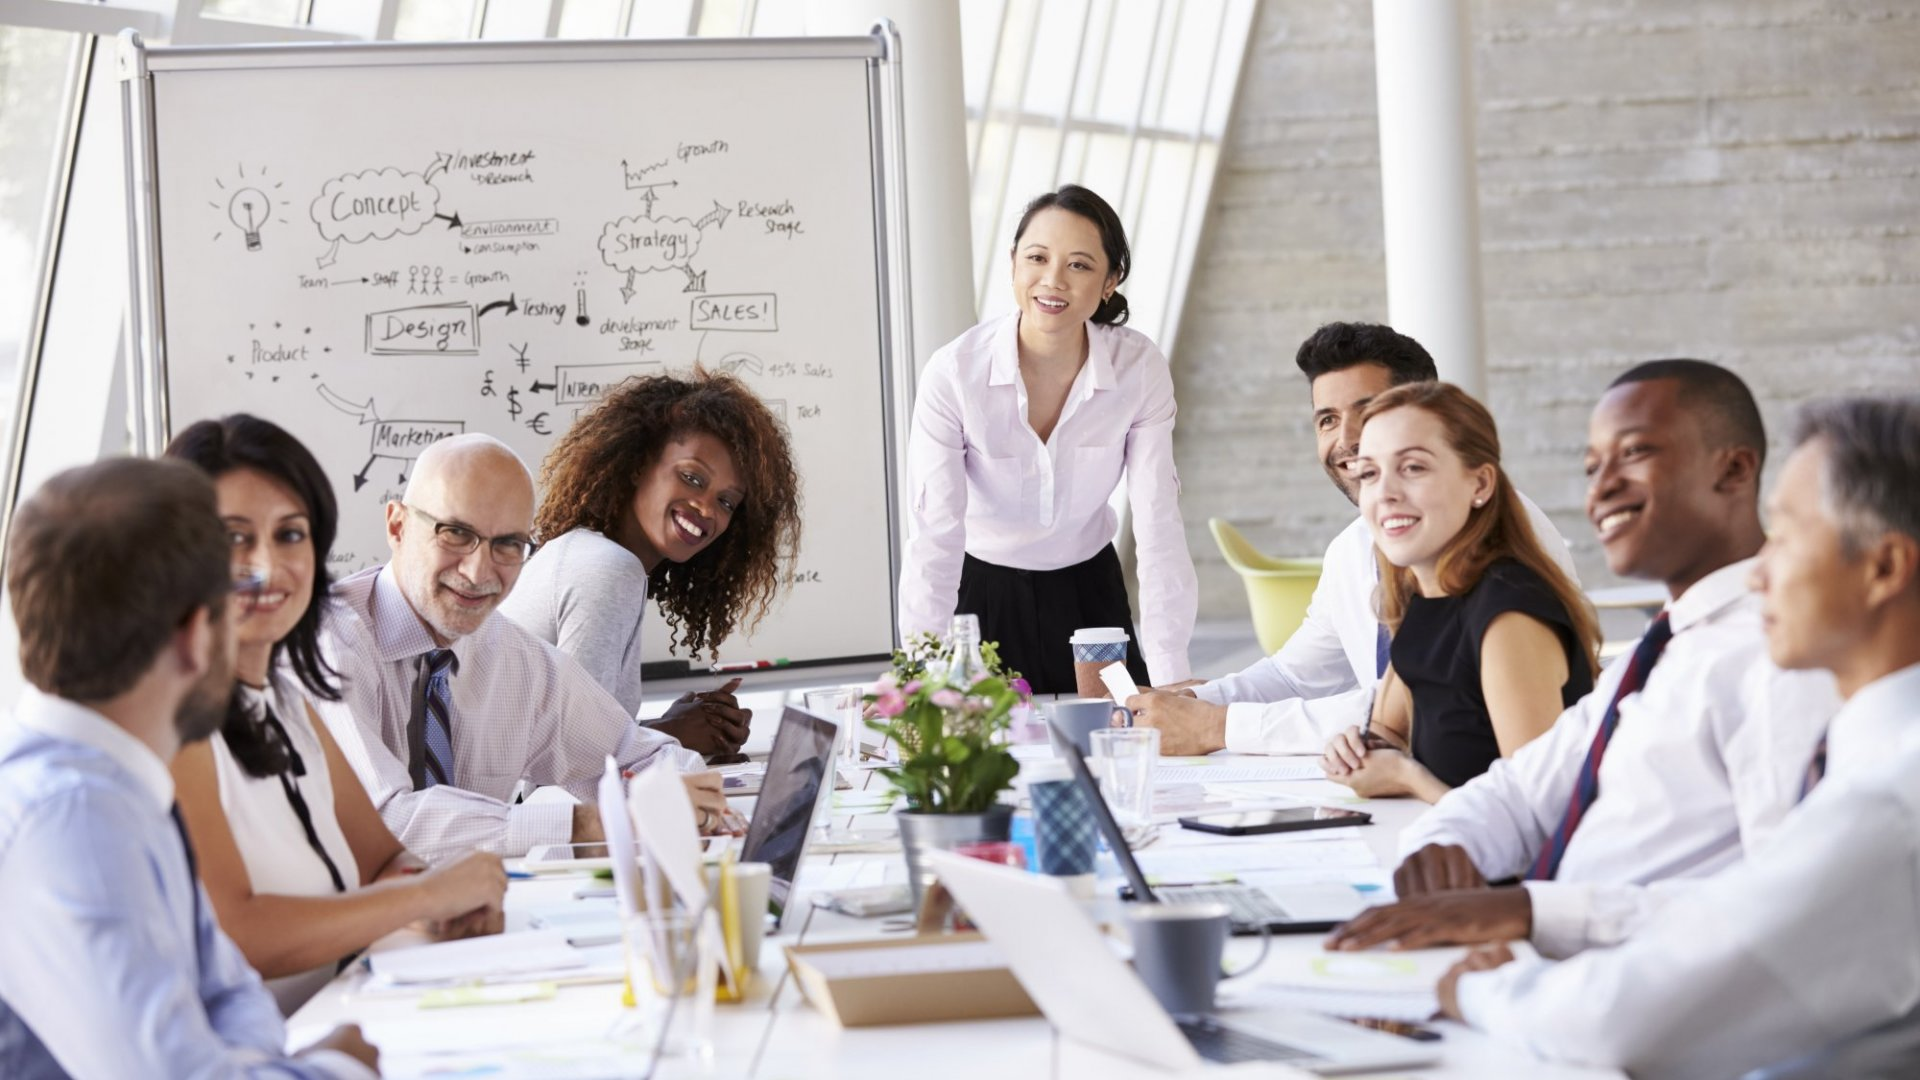 5 Ways to Build a Team of Leaders (While Saving Yourself Some Work)